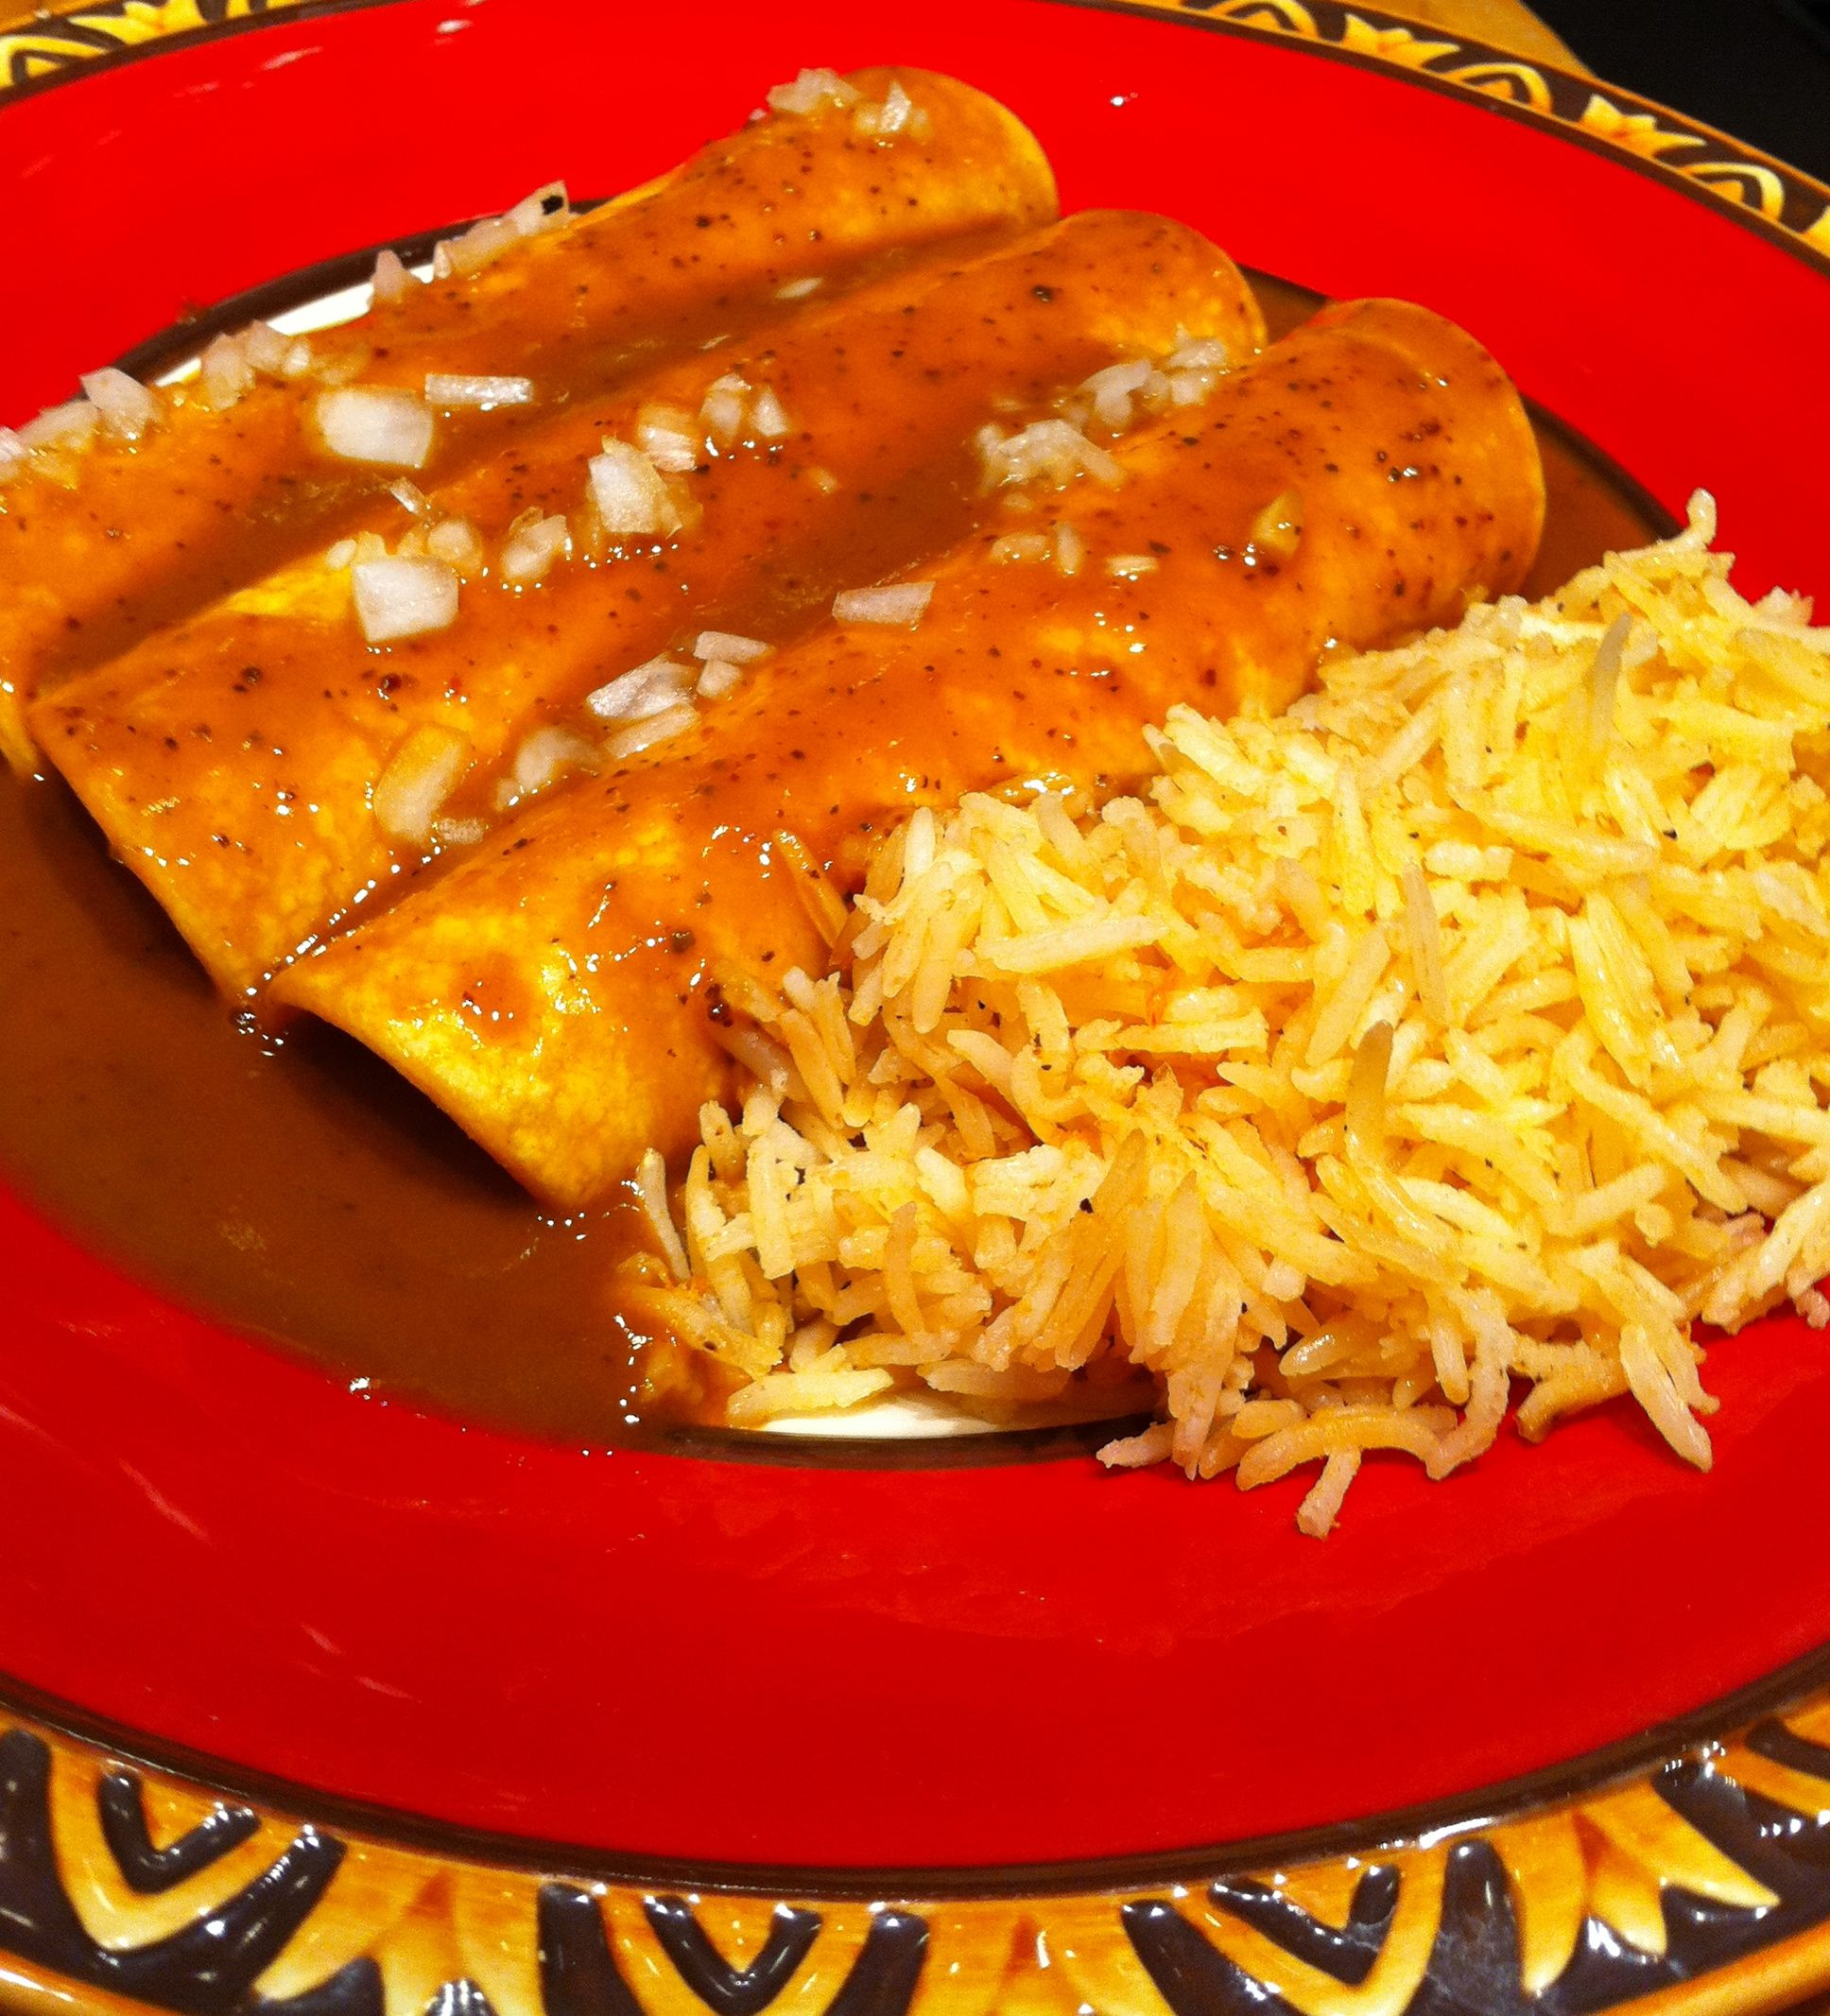 Do you Understand my Enchilada?